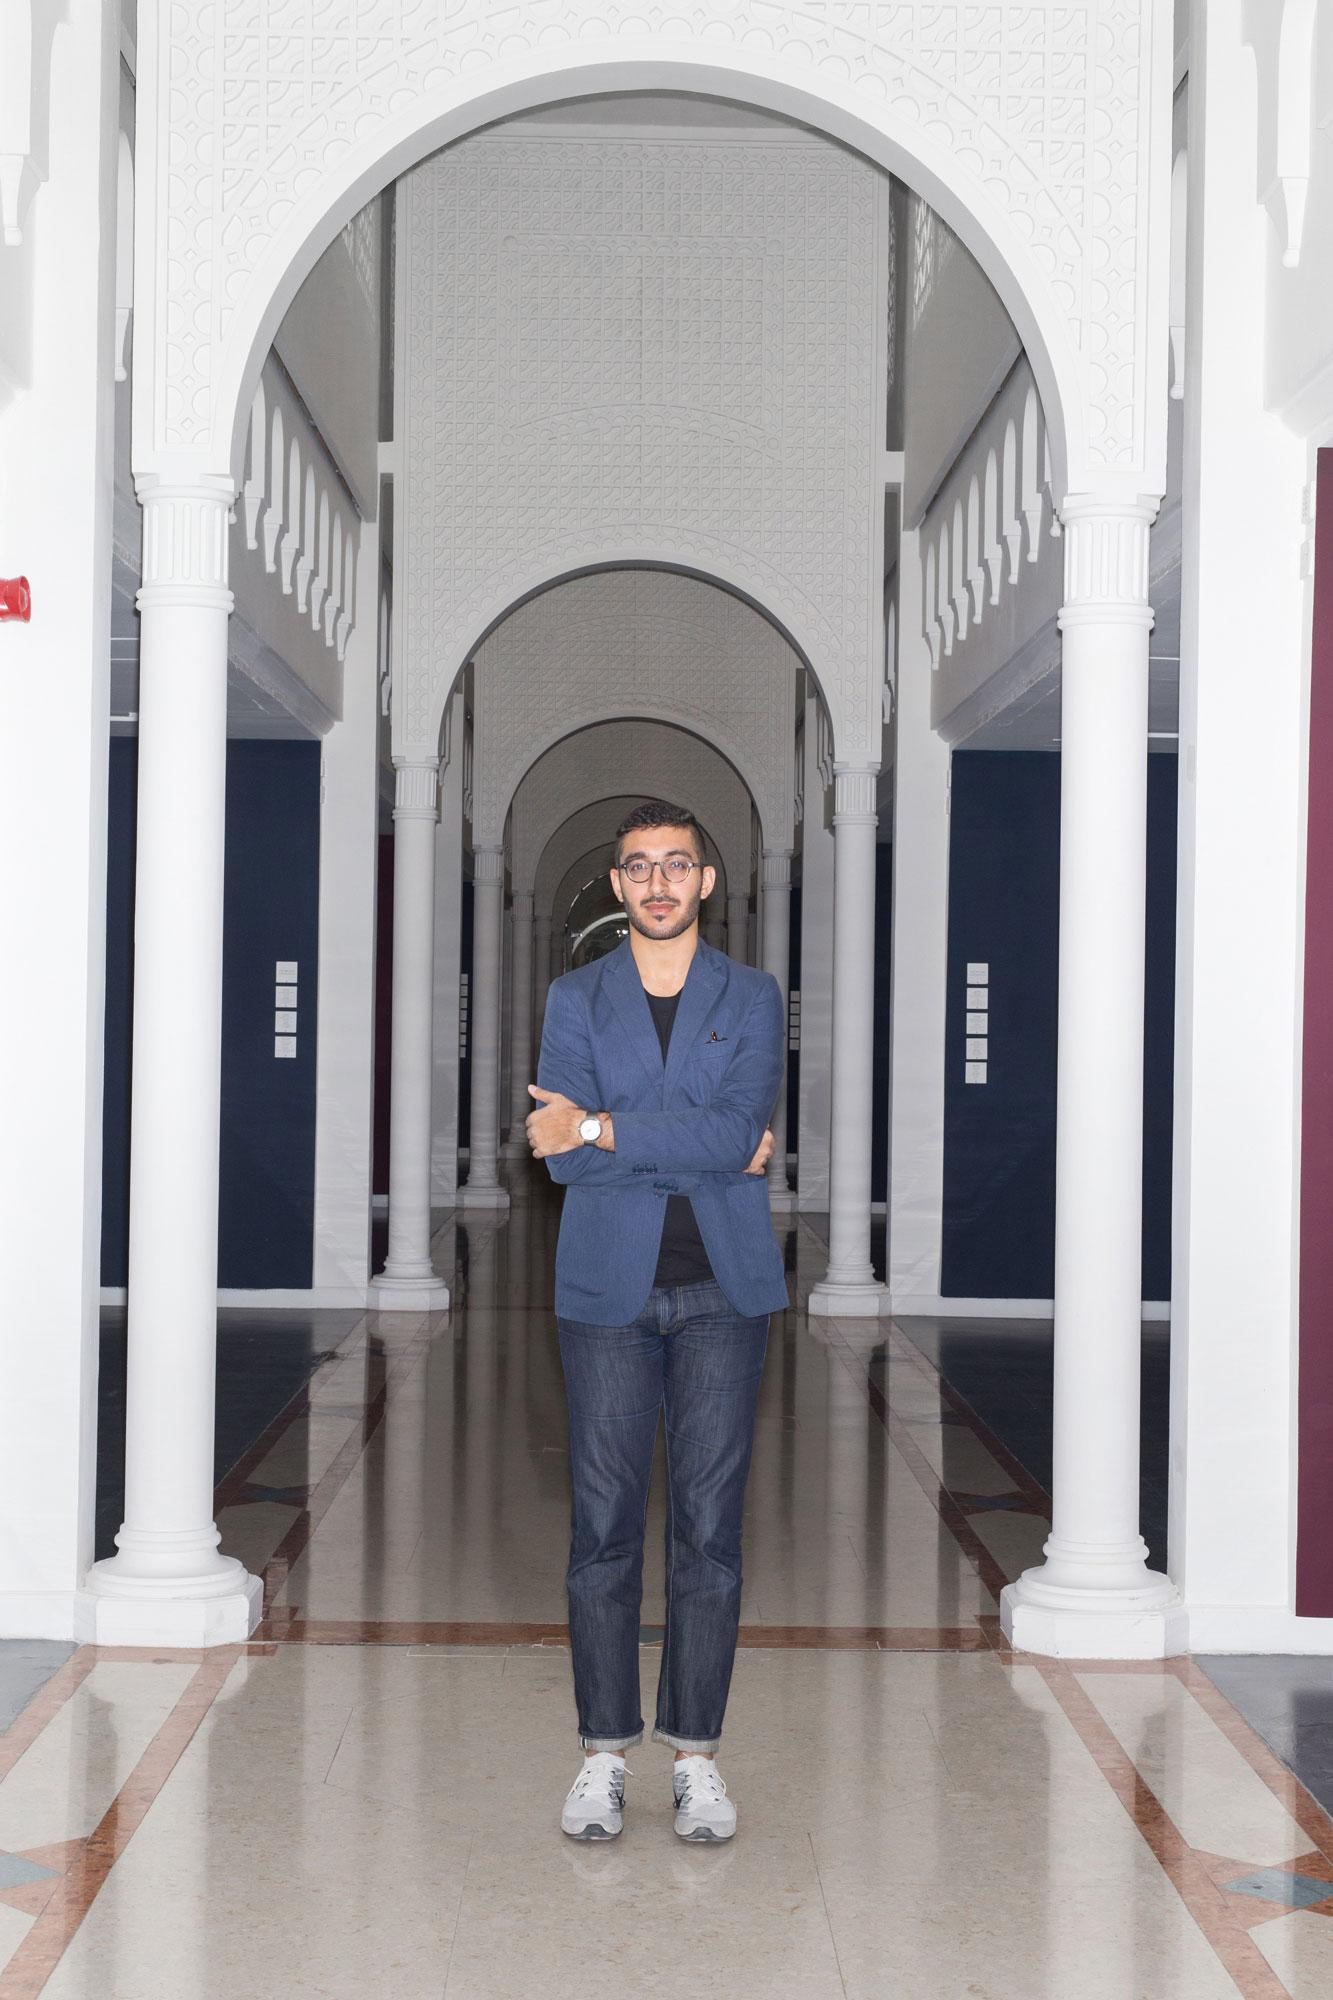 Karim Sultan, curator at Barjeel Art Foundation